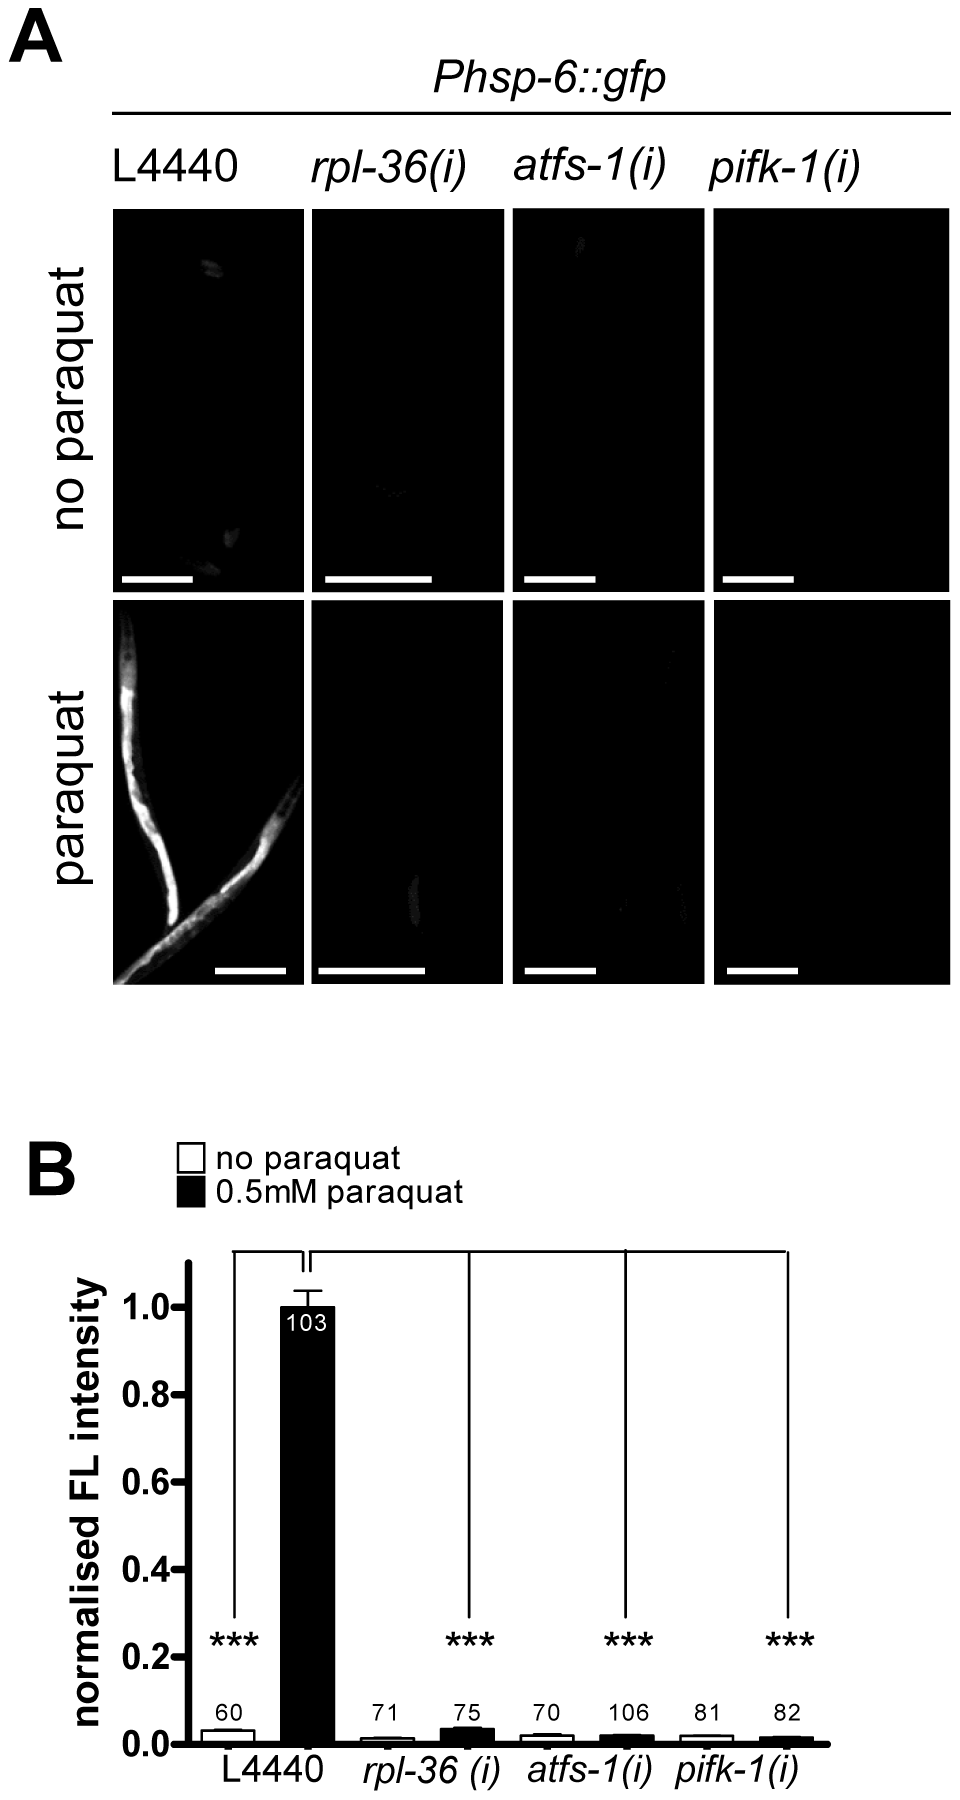 Activities of <i>rpl-36</i>, <i>atfs-1</i> and <i>pifk-1</i> are required for the <i>hsp-6</i> response to paraquat.